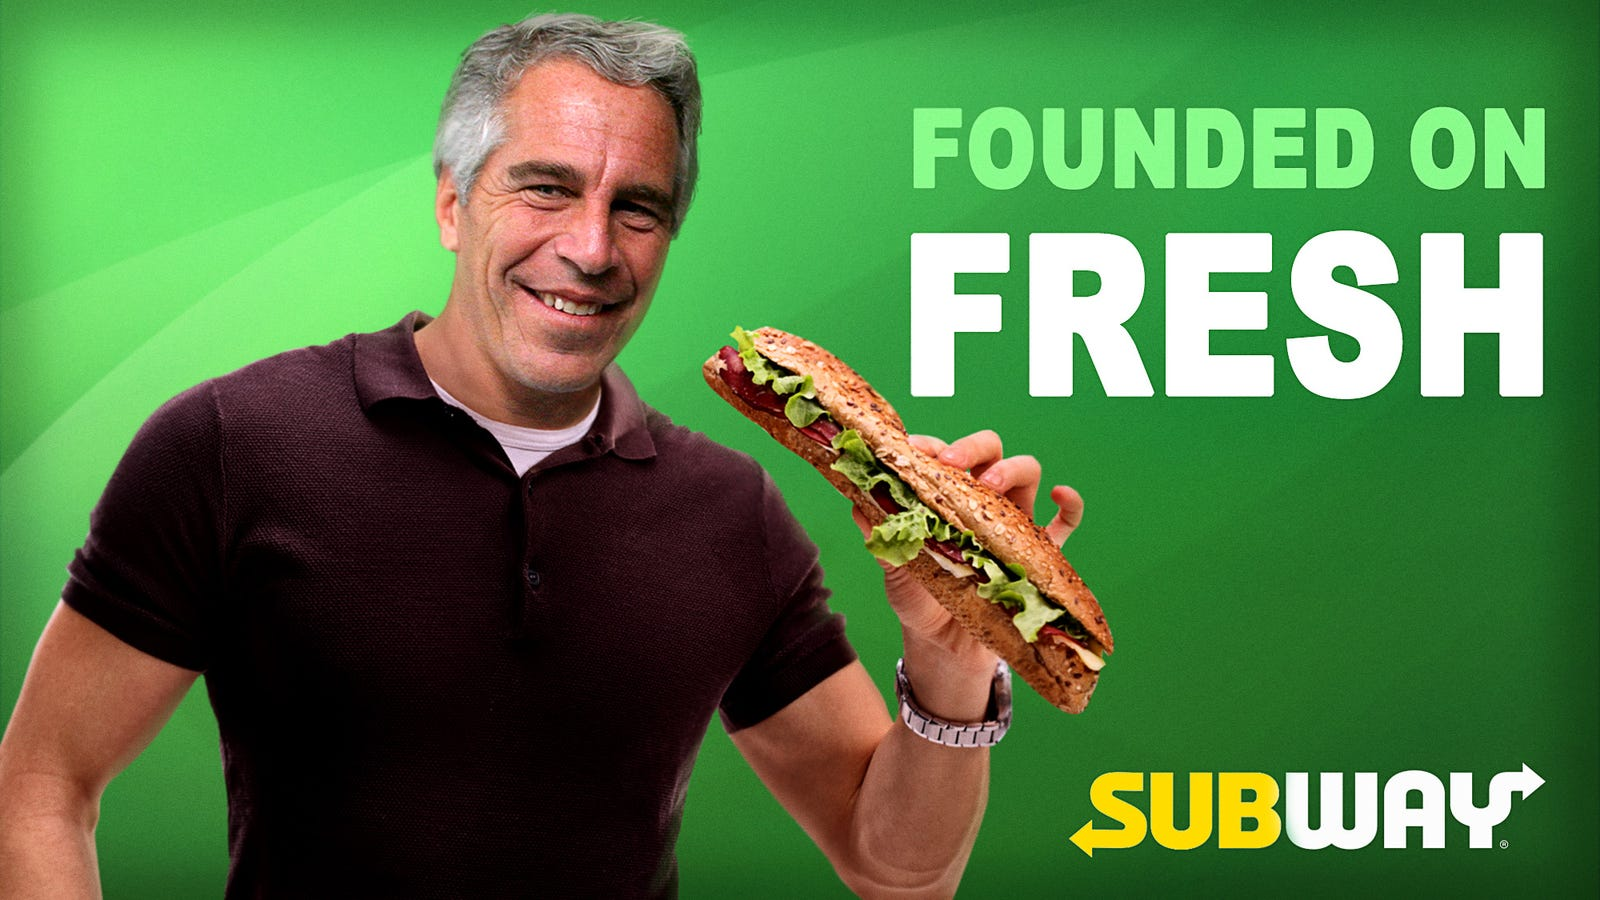 Frustrated Subway Marketers Scrap $150 Million Jeffrey Epstein Ad Campaign